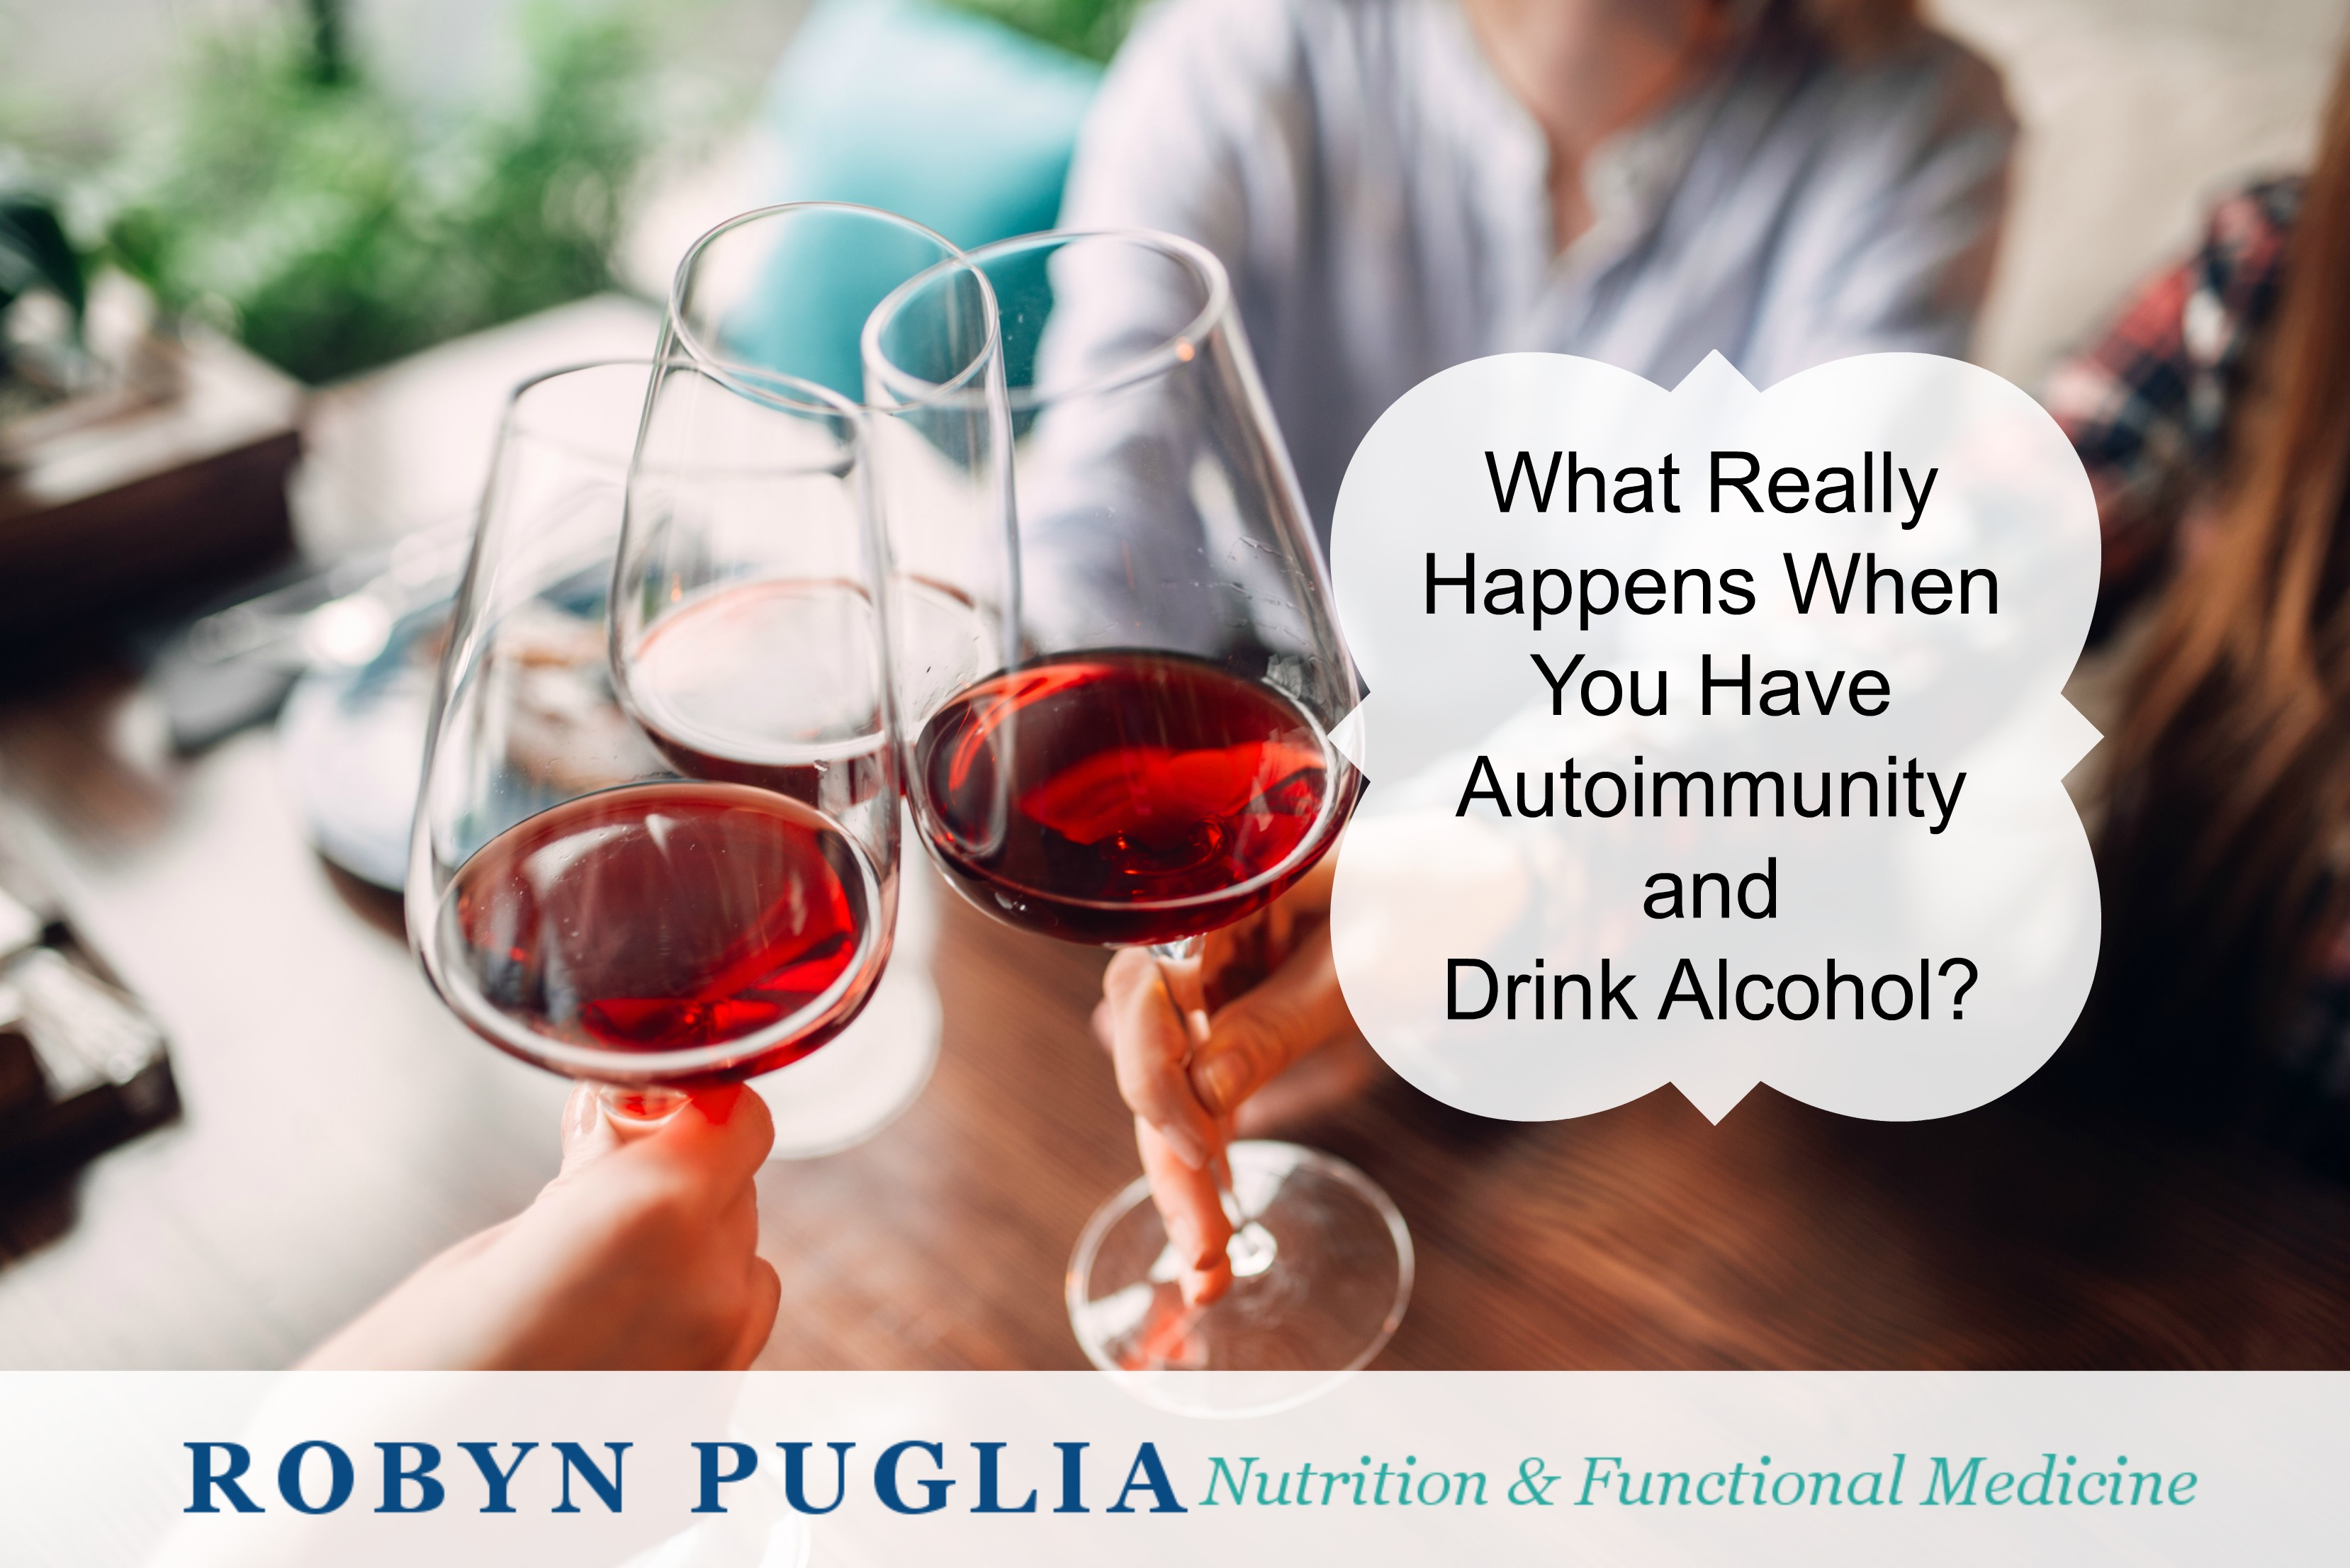 What Really Happens When You Have Autoimmunity and Drink